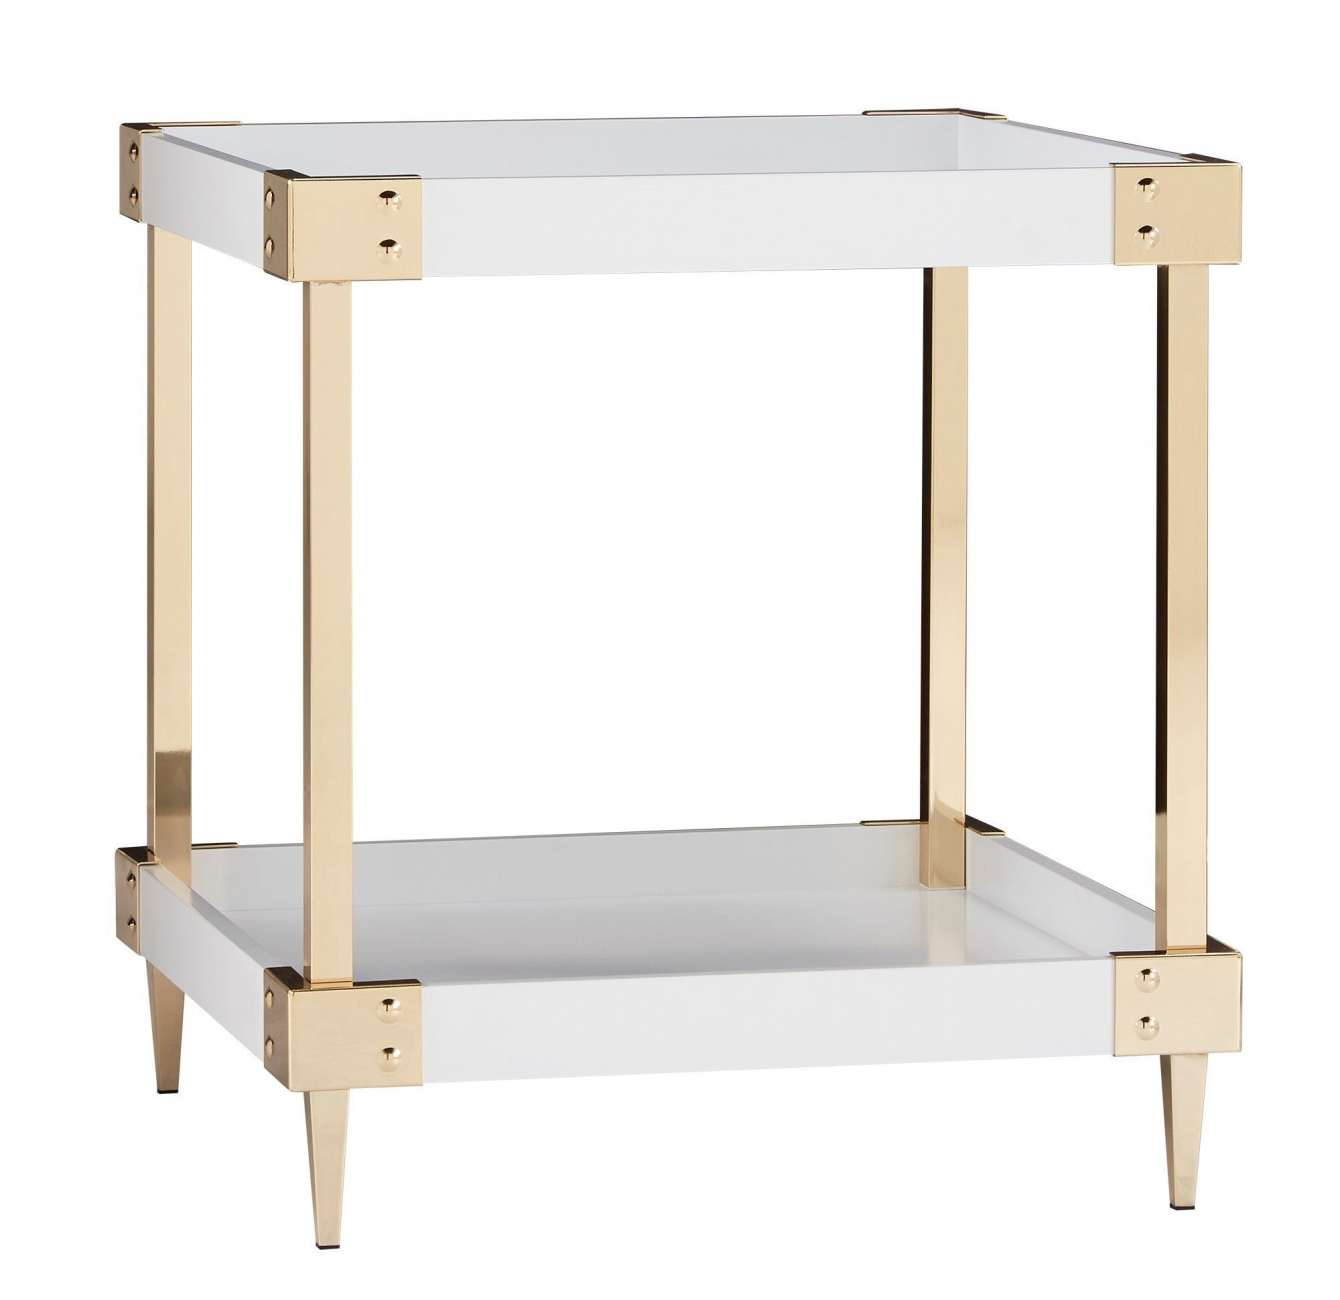 gold and glass desk also luxury accent end table white inspire marble tall narrow sofa tiered side sun umbrella base outdoor daybeds clearance kitchen chairs baroque console world